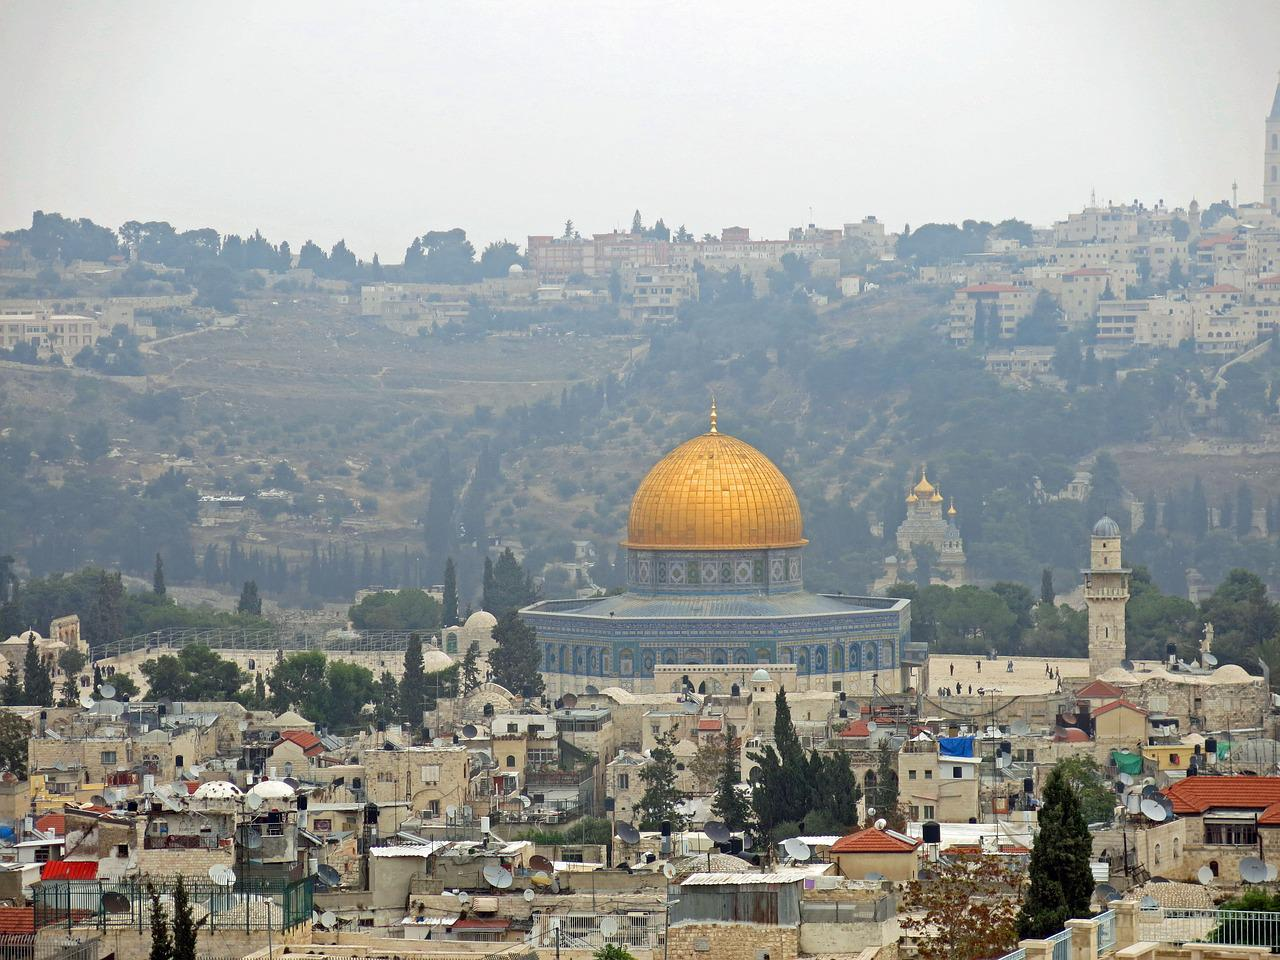 Dome of the rock in jerusalem pictures The Dome of the Rock: Oleg Grabar, Said Nuseibeh